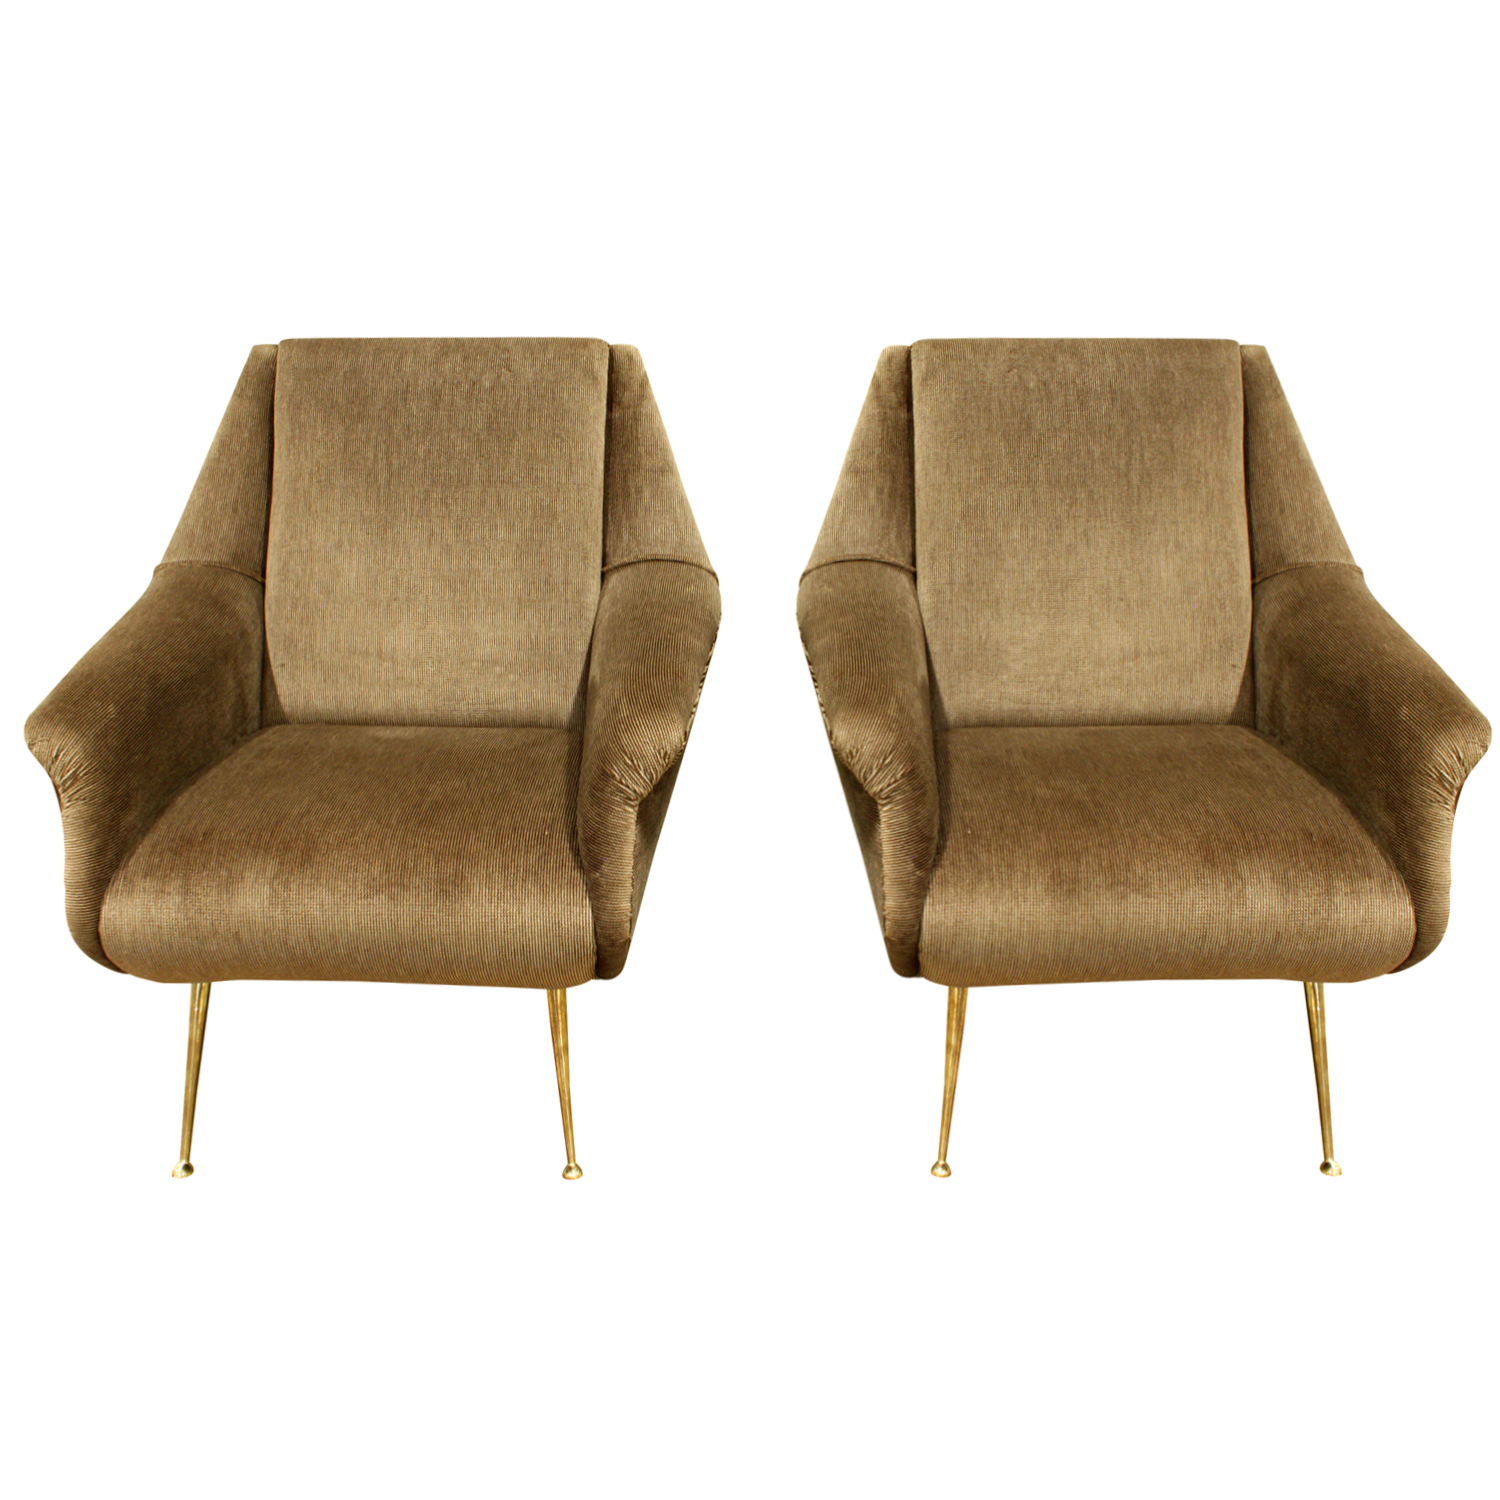 de Carli 120 sculptural brass legs loungechairs175 main.JPG